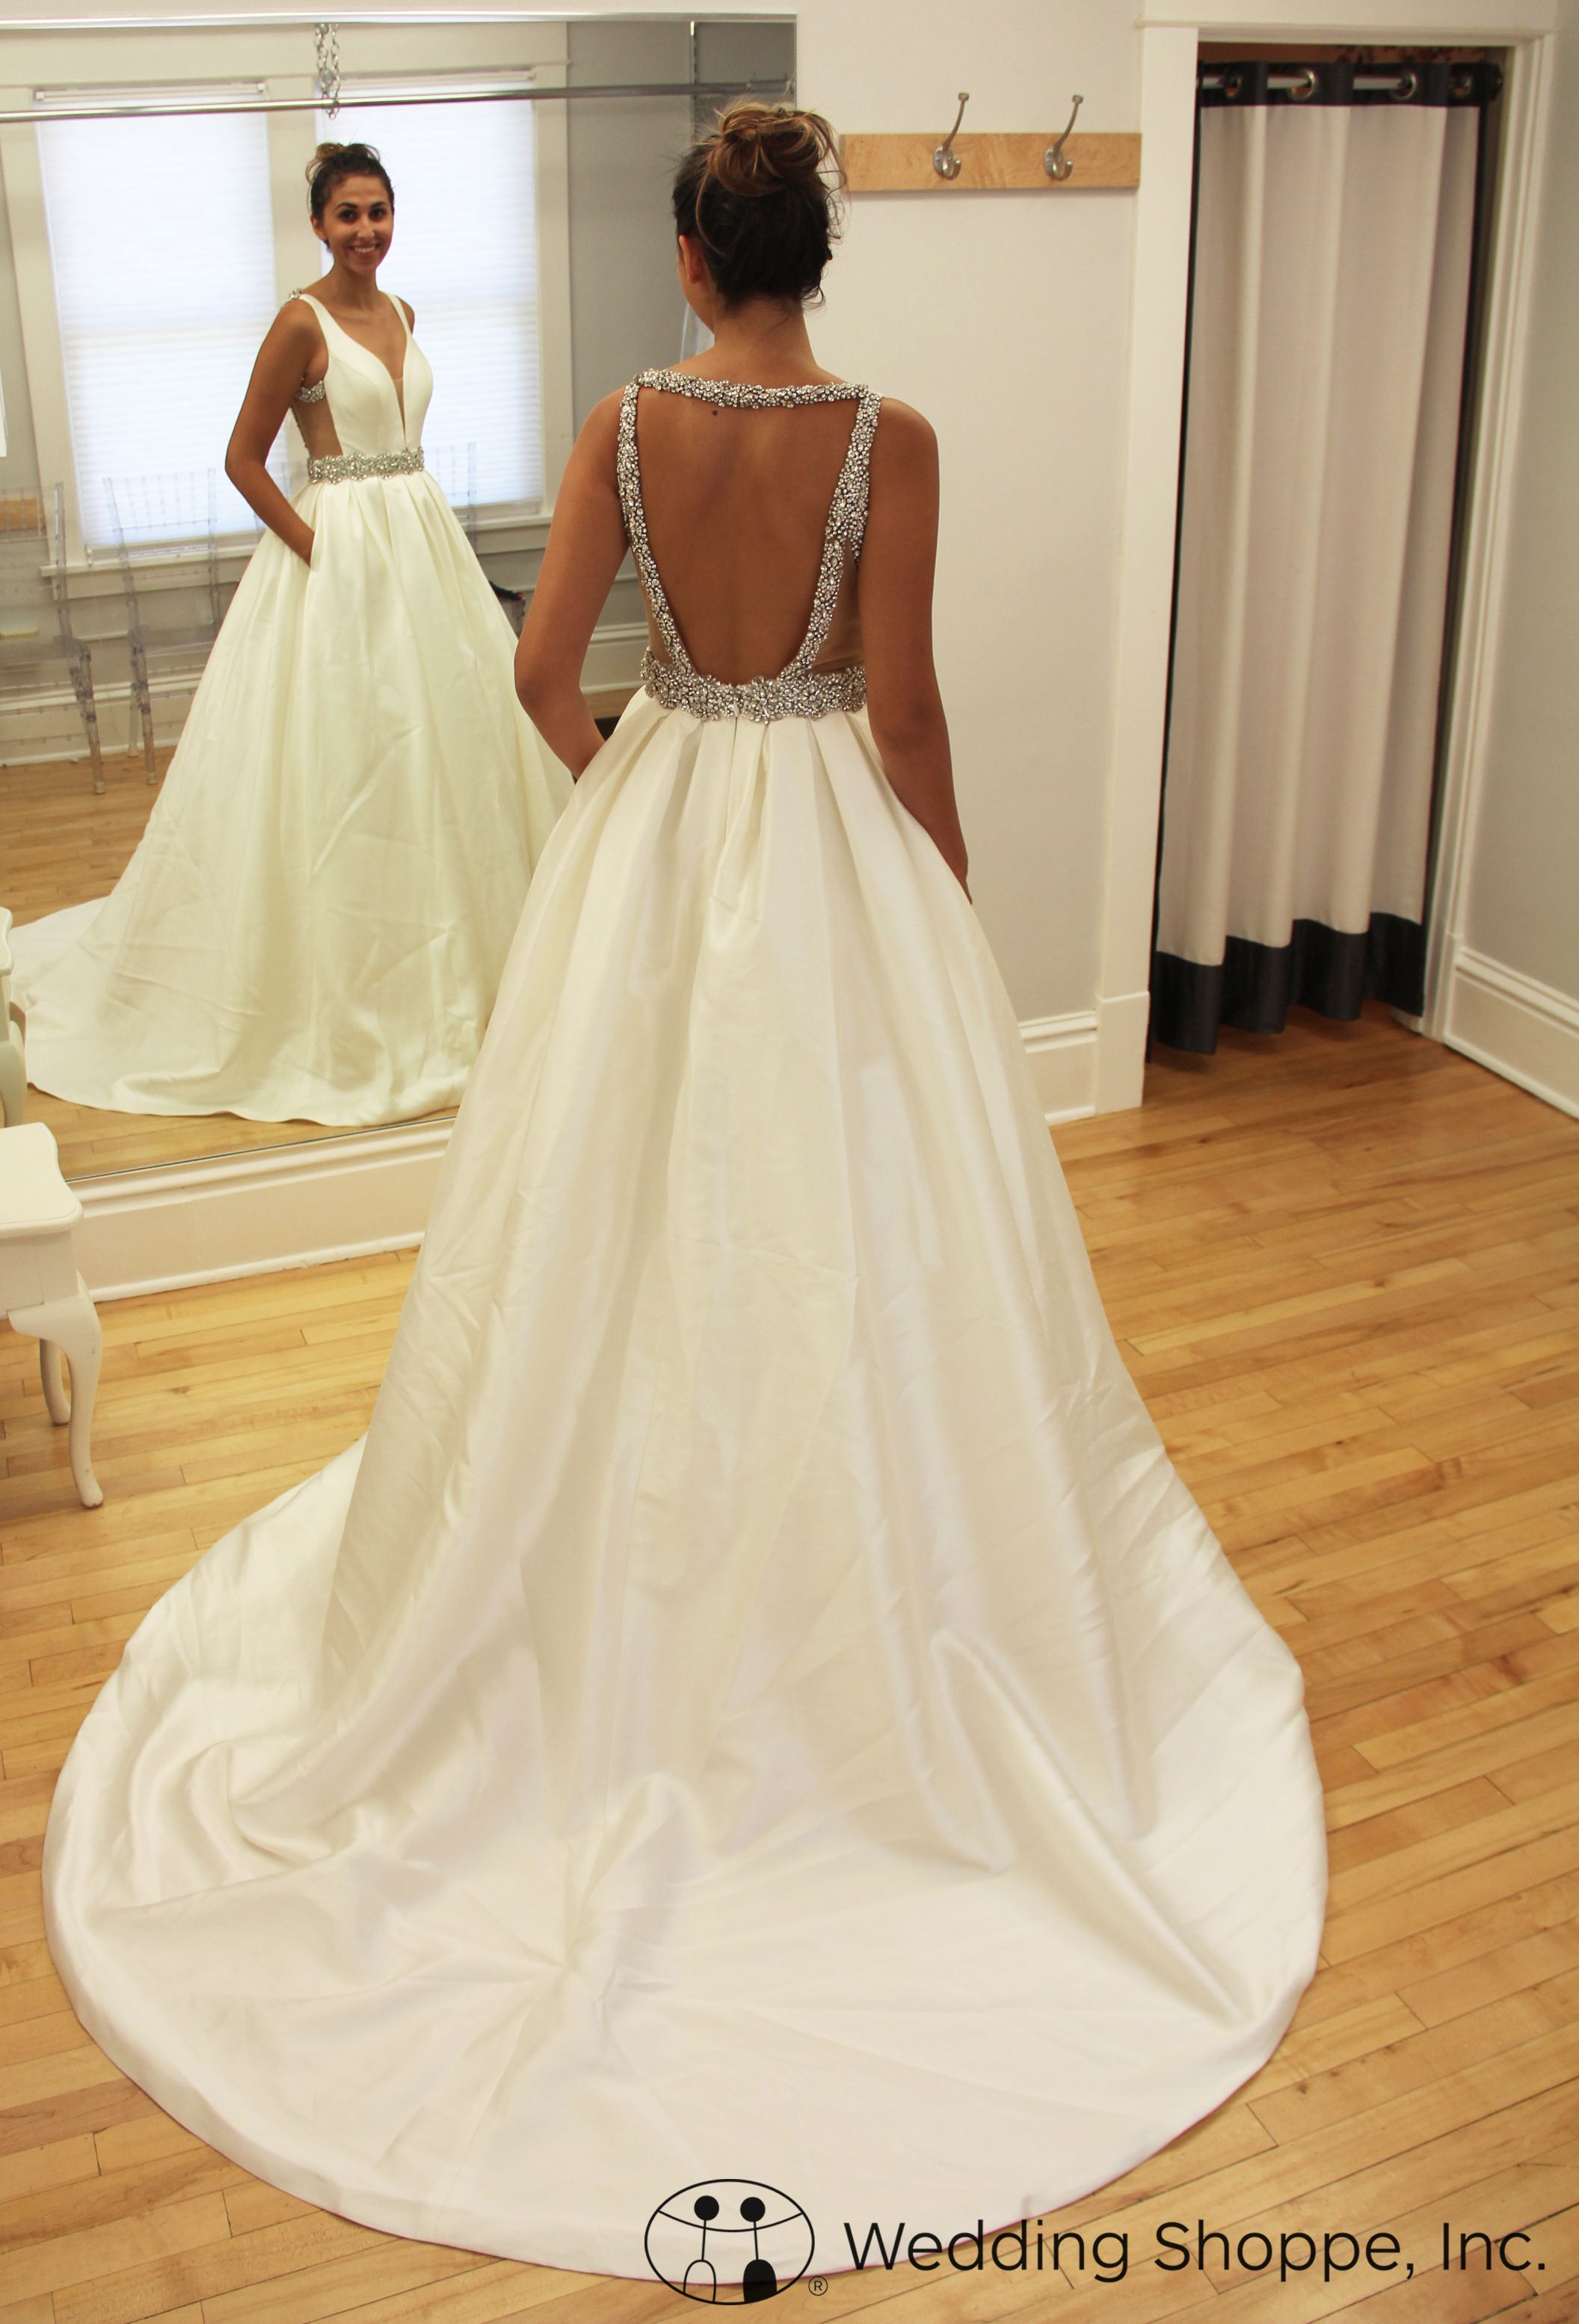 D In Silky Shantung This Dreamy Ball Gown Wedding Dress Features A Ed Sleeveless Bodice Deep V Neckline With An Inset Sheer Panel For Subtle